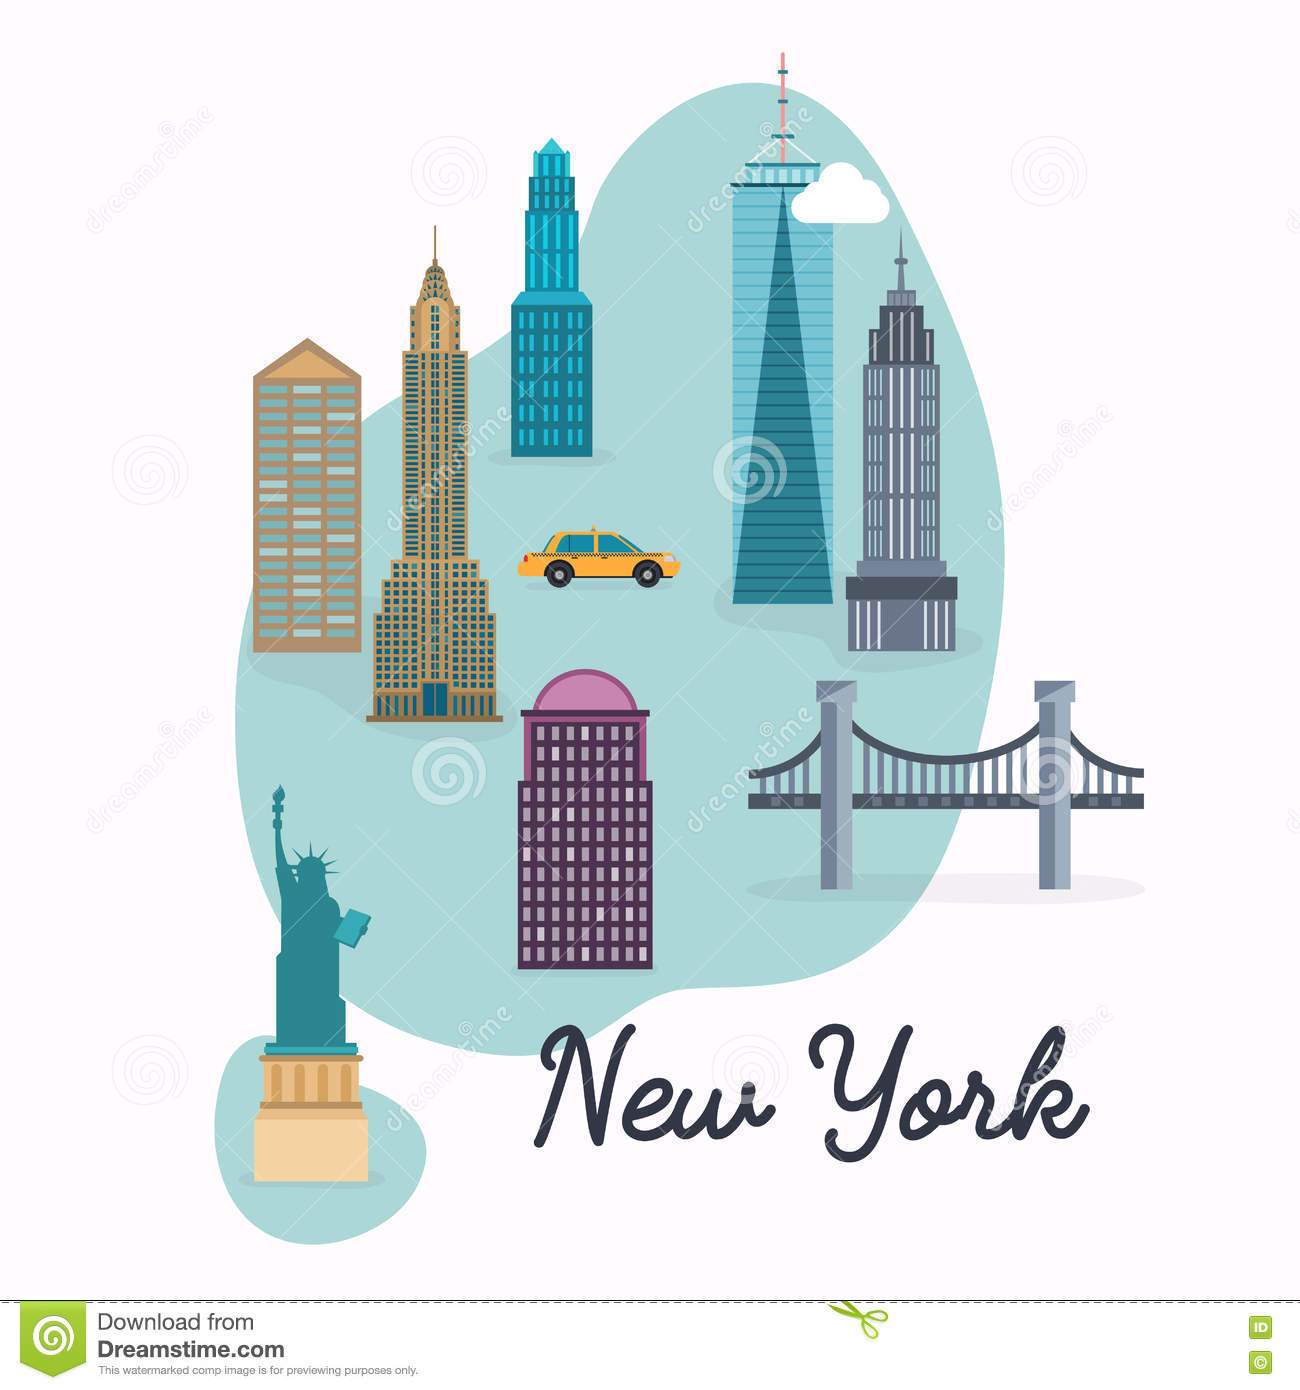 Map Of New York City With Landmarks.New York City Travel Map And Vector Landscape Of Buildings And